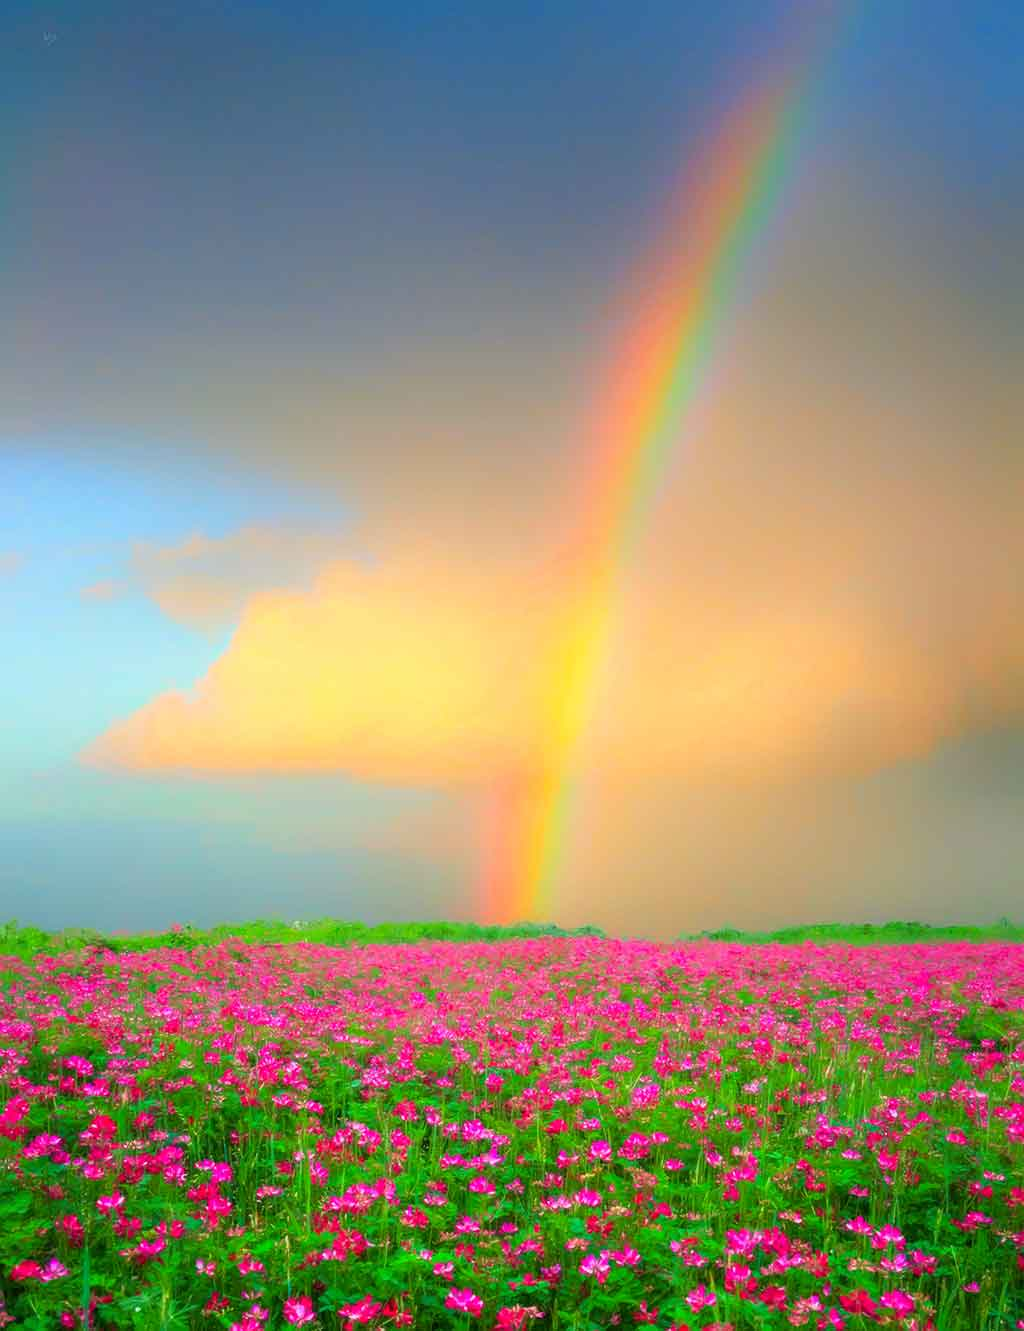 Flowerfield Rainbow, digital landscape painting on Art Canvas Print by Wieslaw Sadurski